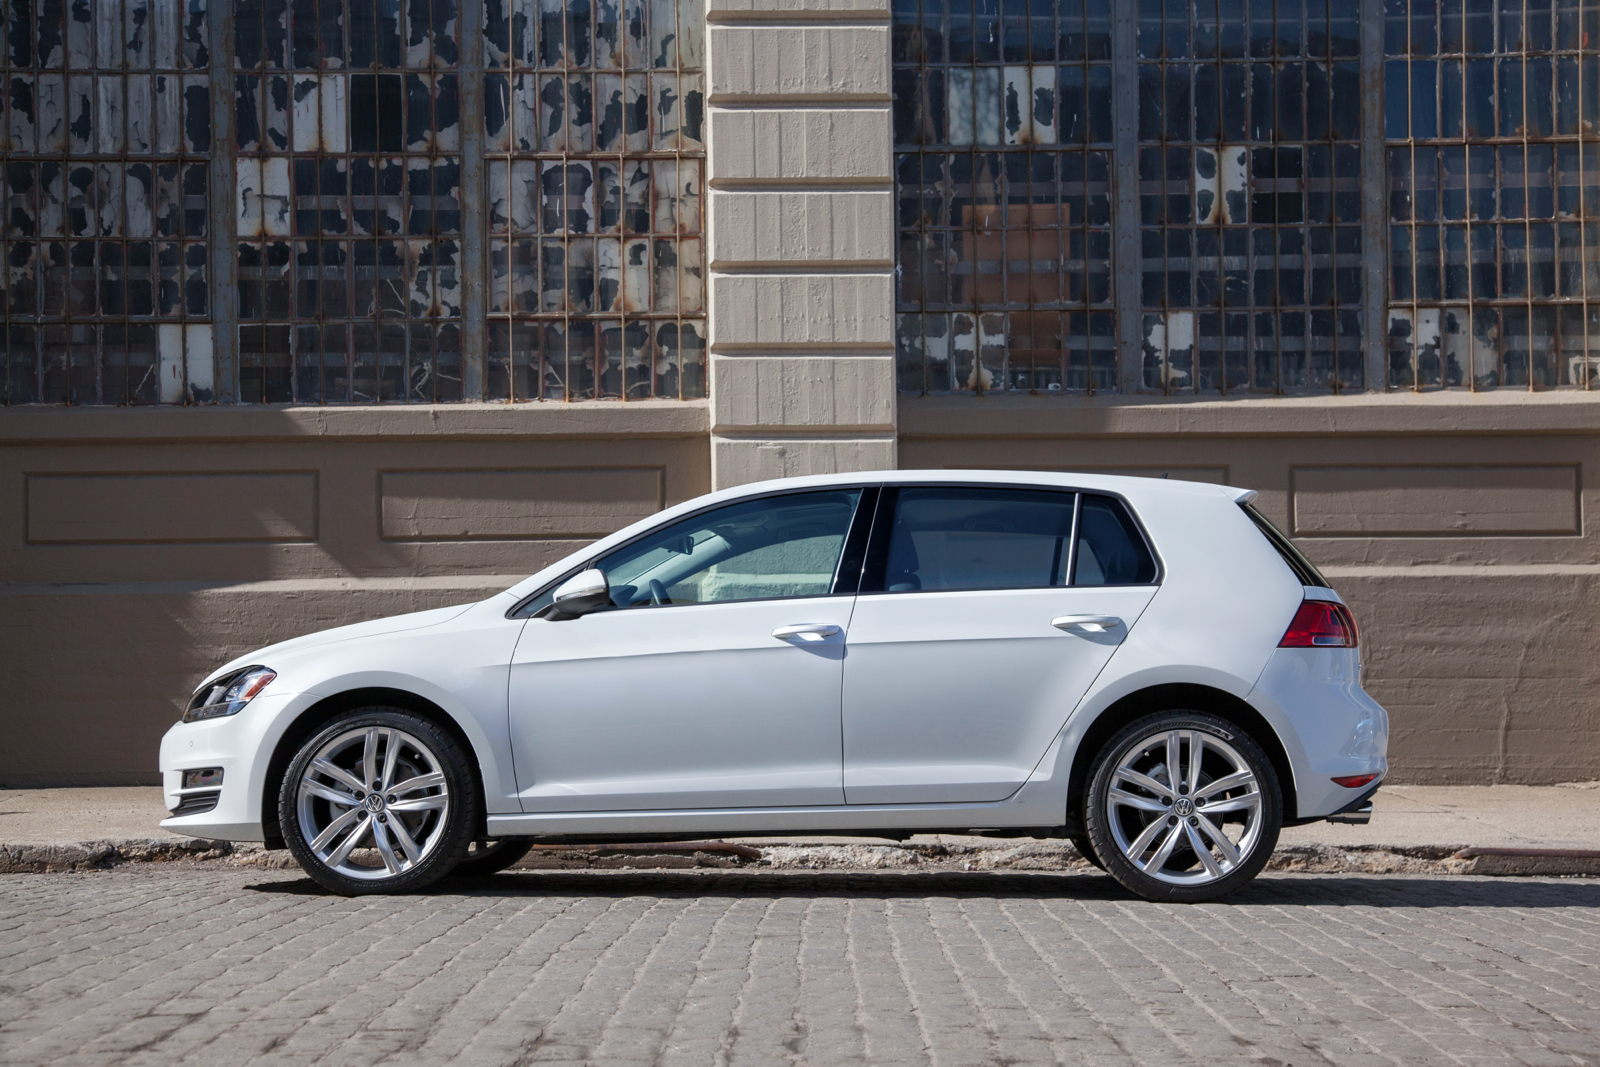 2015 Volkswagen Golf Vw Review Ratings Specs Prices